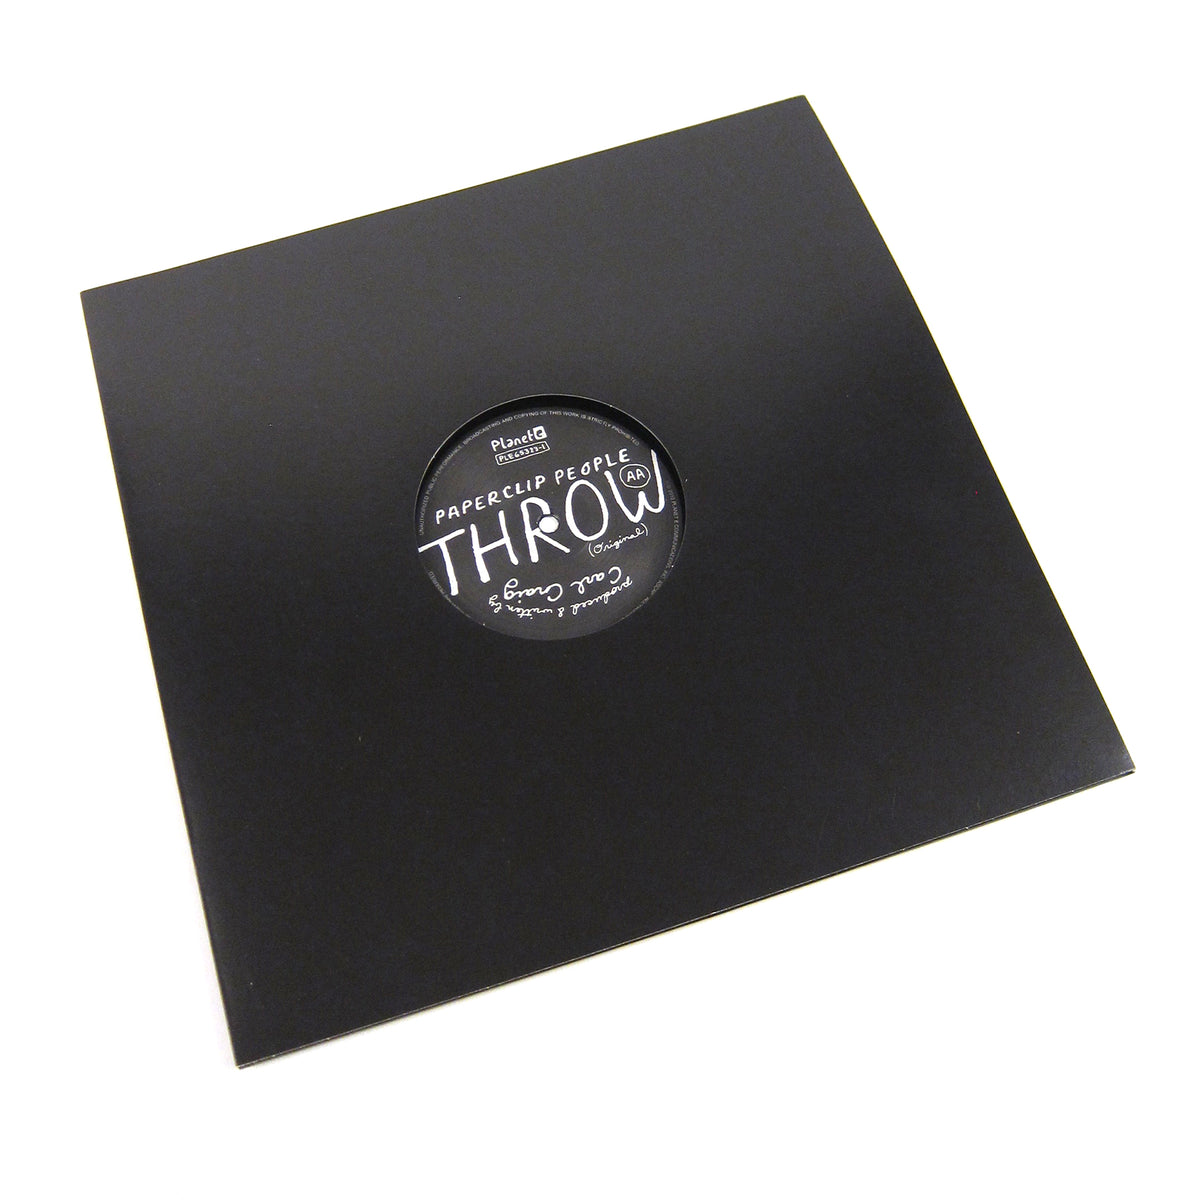 LCD Soundsystem / Paperclip People: Throw (Carl Craig) Vinyl 12""